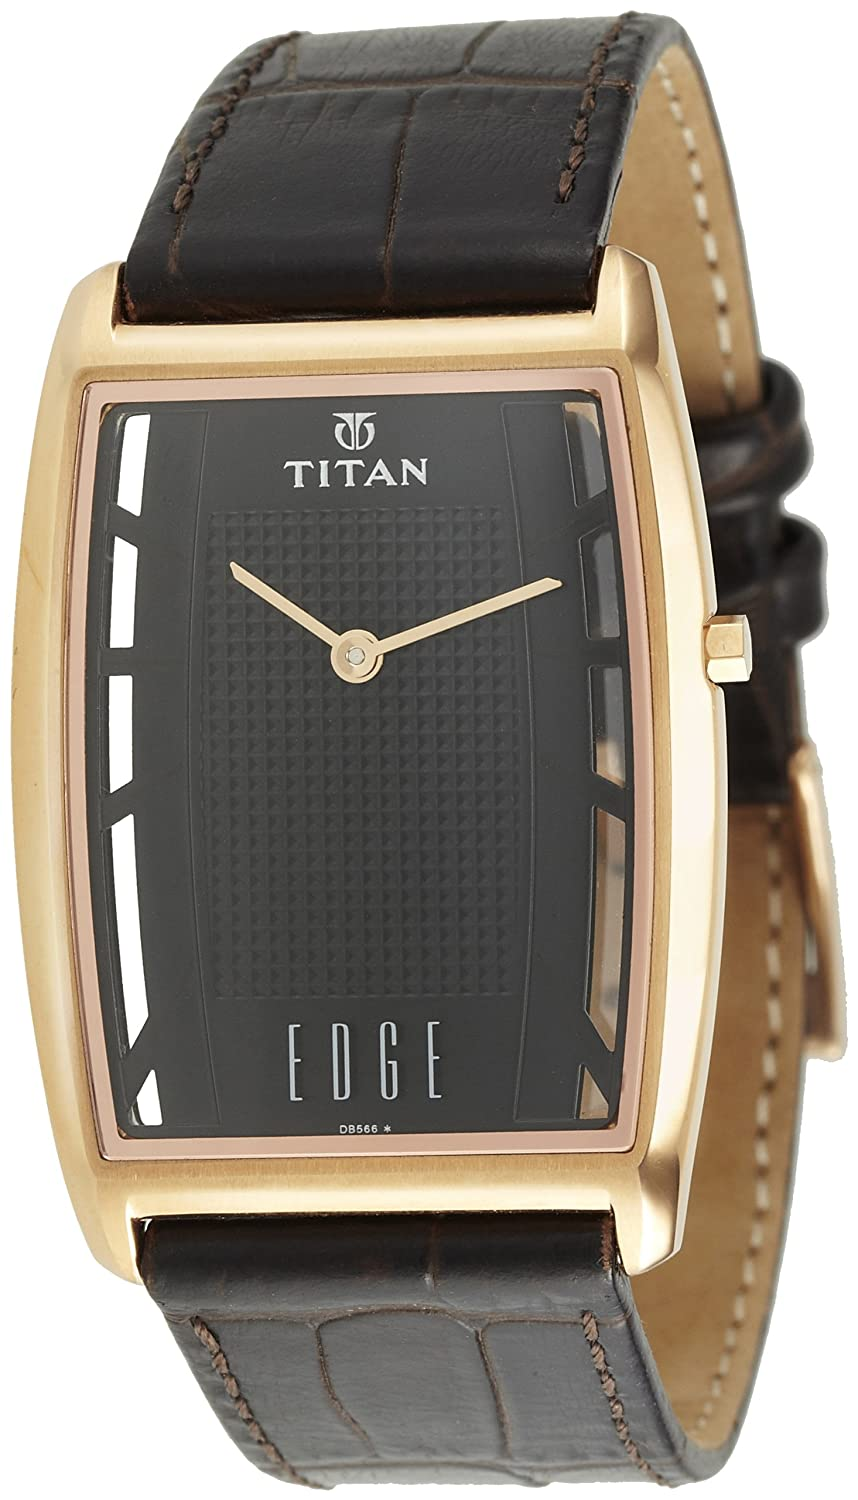 shoes amazon edge com titan watches clothing b jewelry